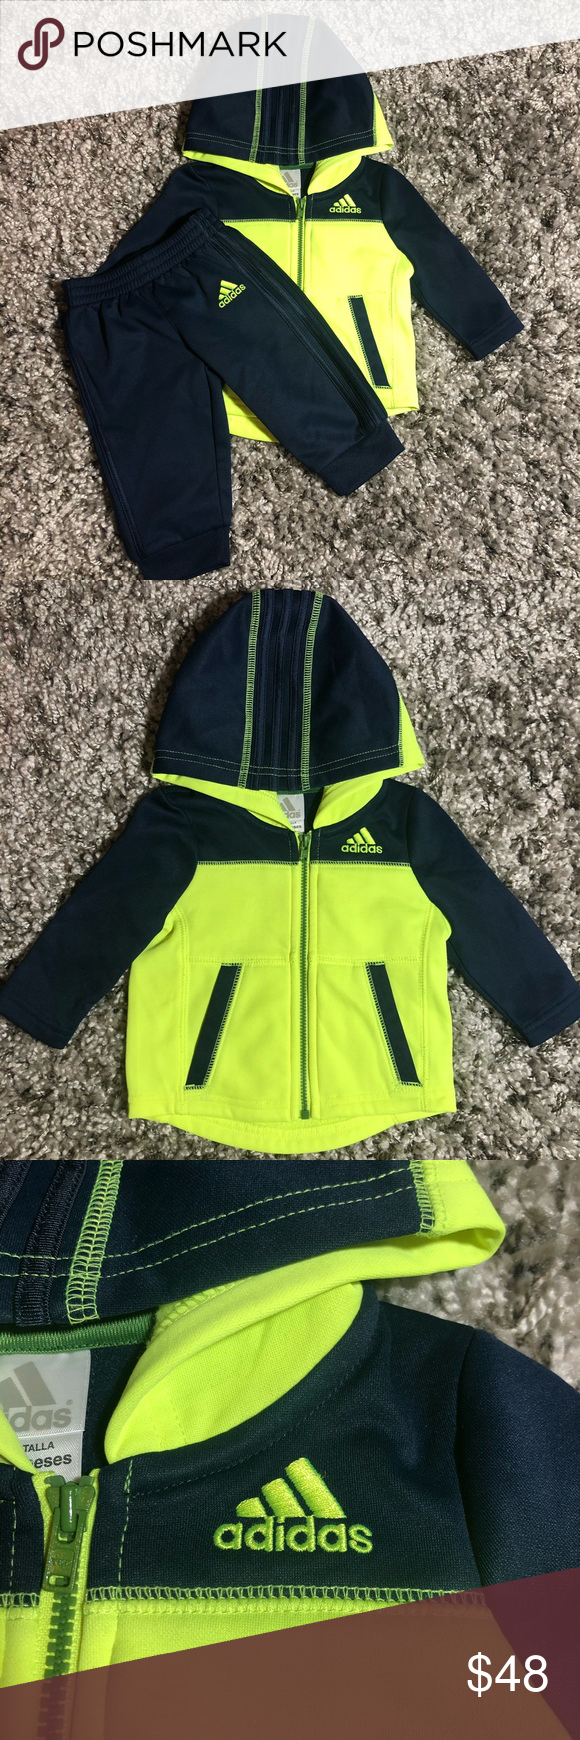 BABY: 3 MO. NEW ADIDAS TRACKSUIT New, never worn but no tags